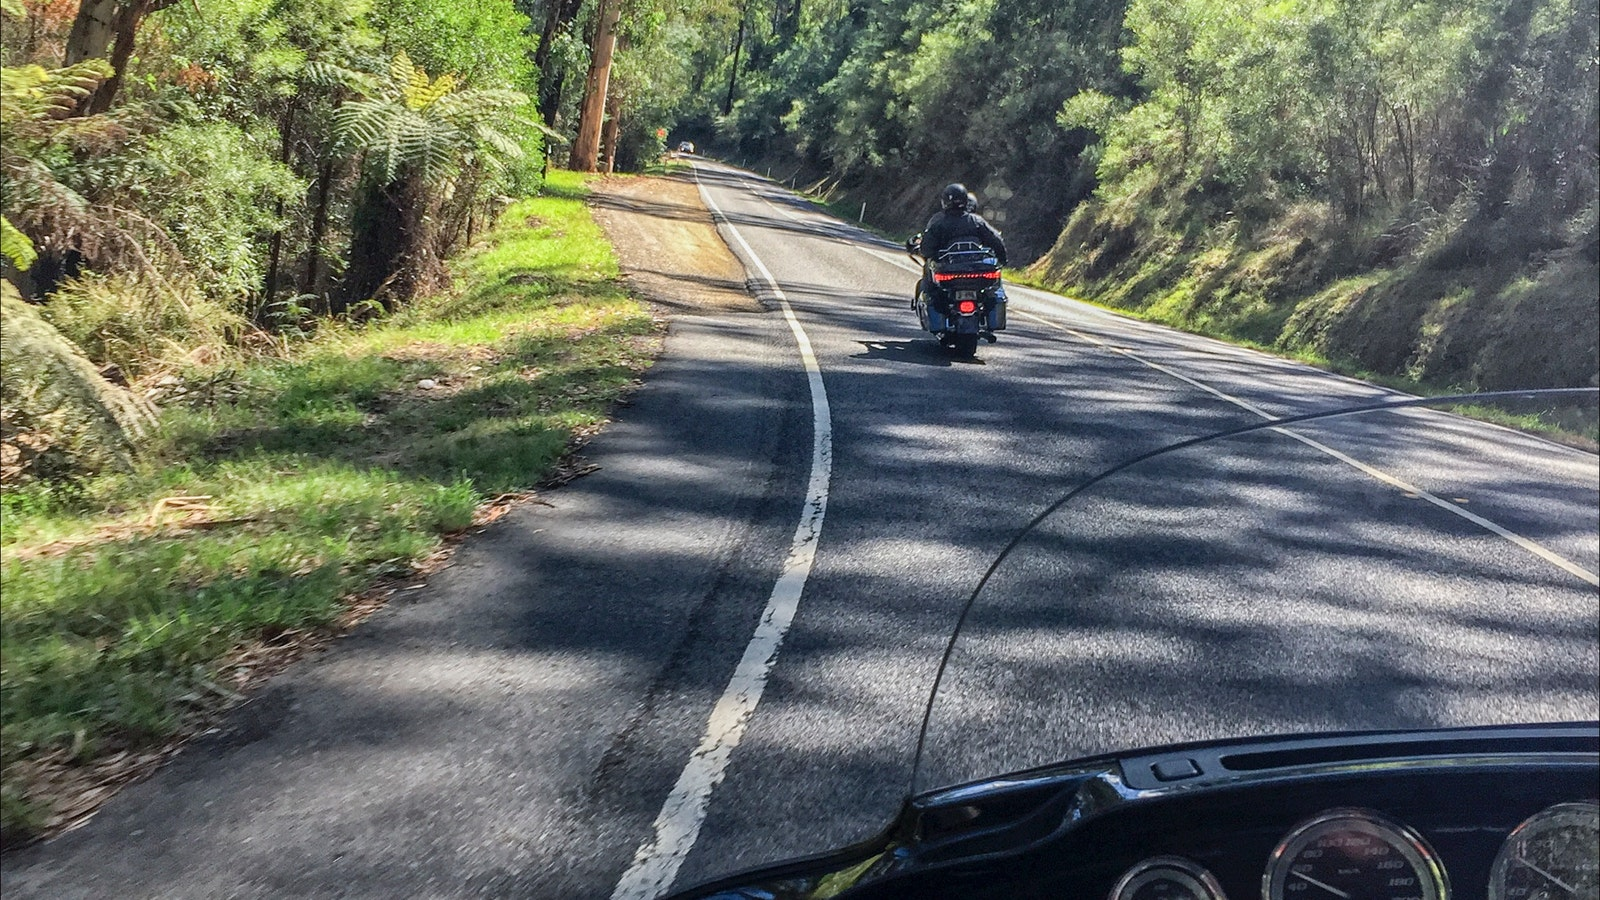 Ride to the hills outside Melbourne  as a pillion passenger on a Harley Davidson motorbike